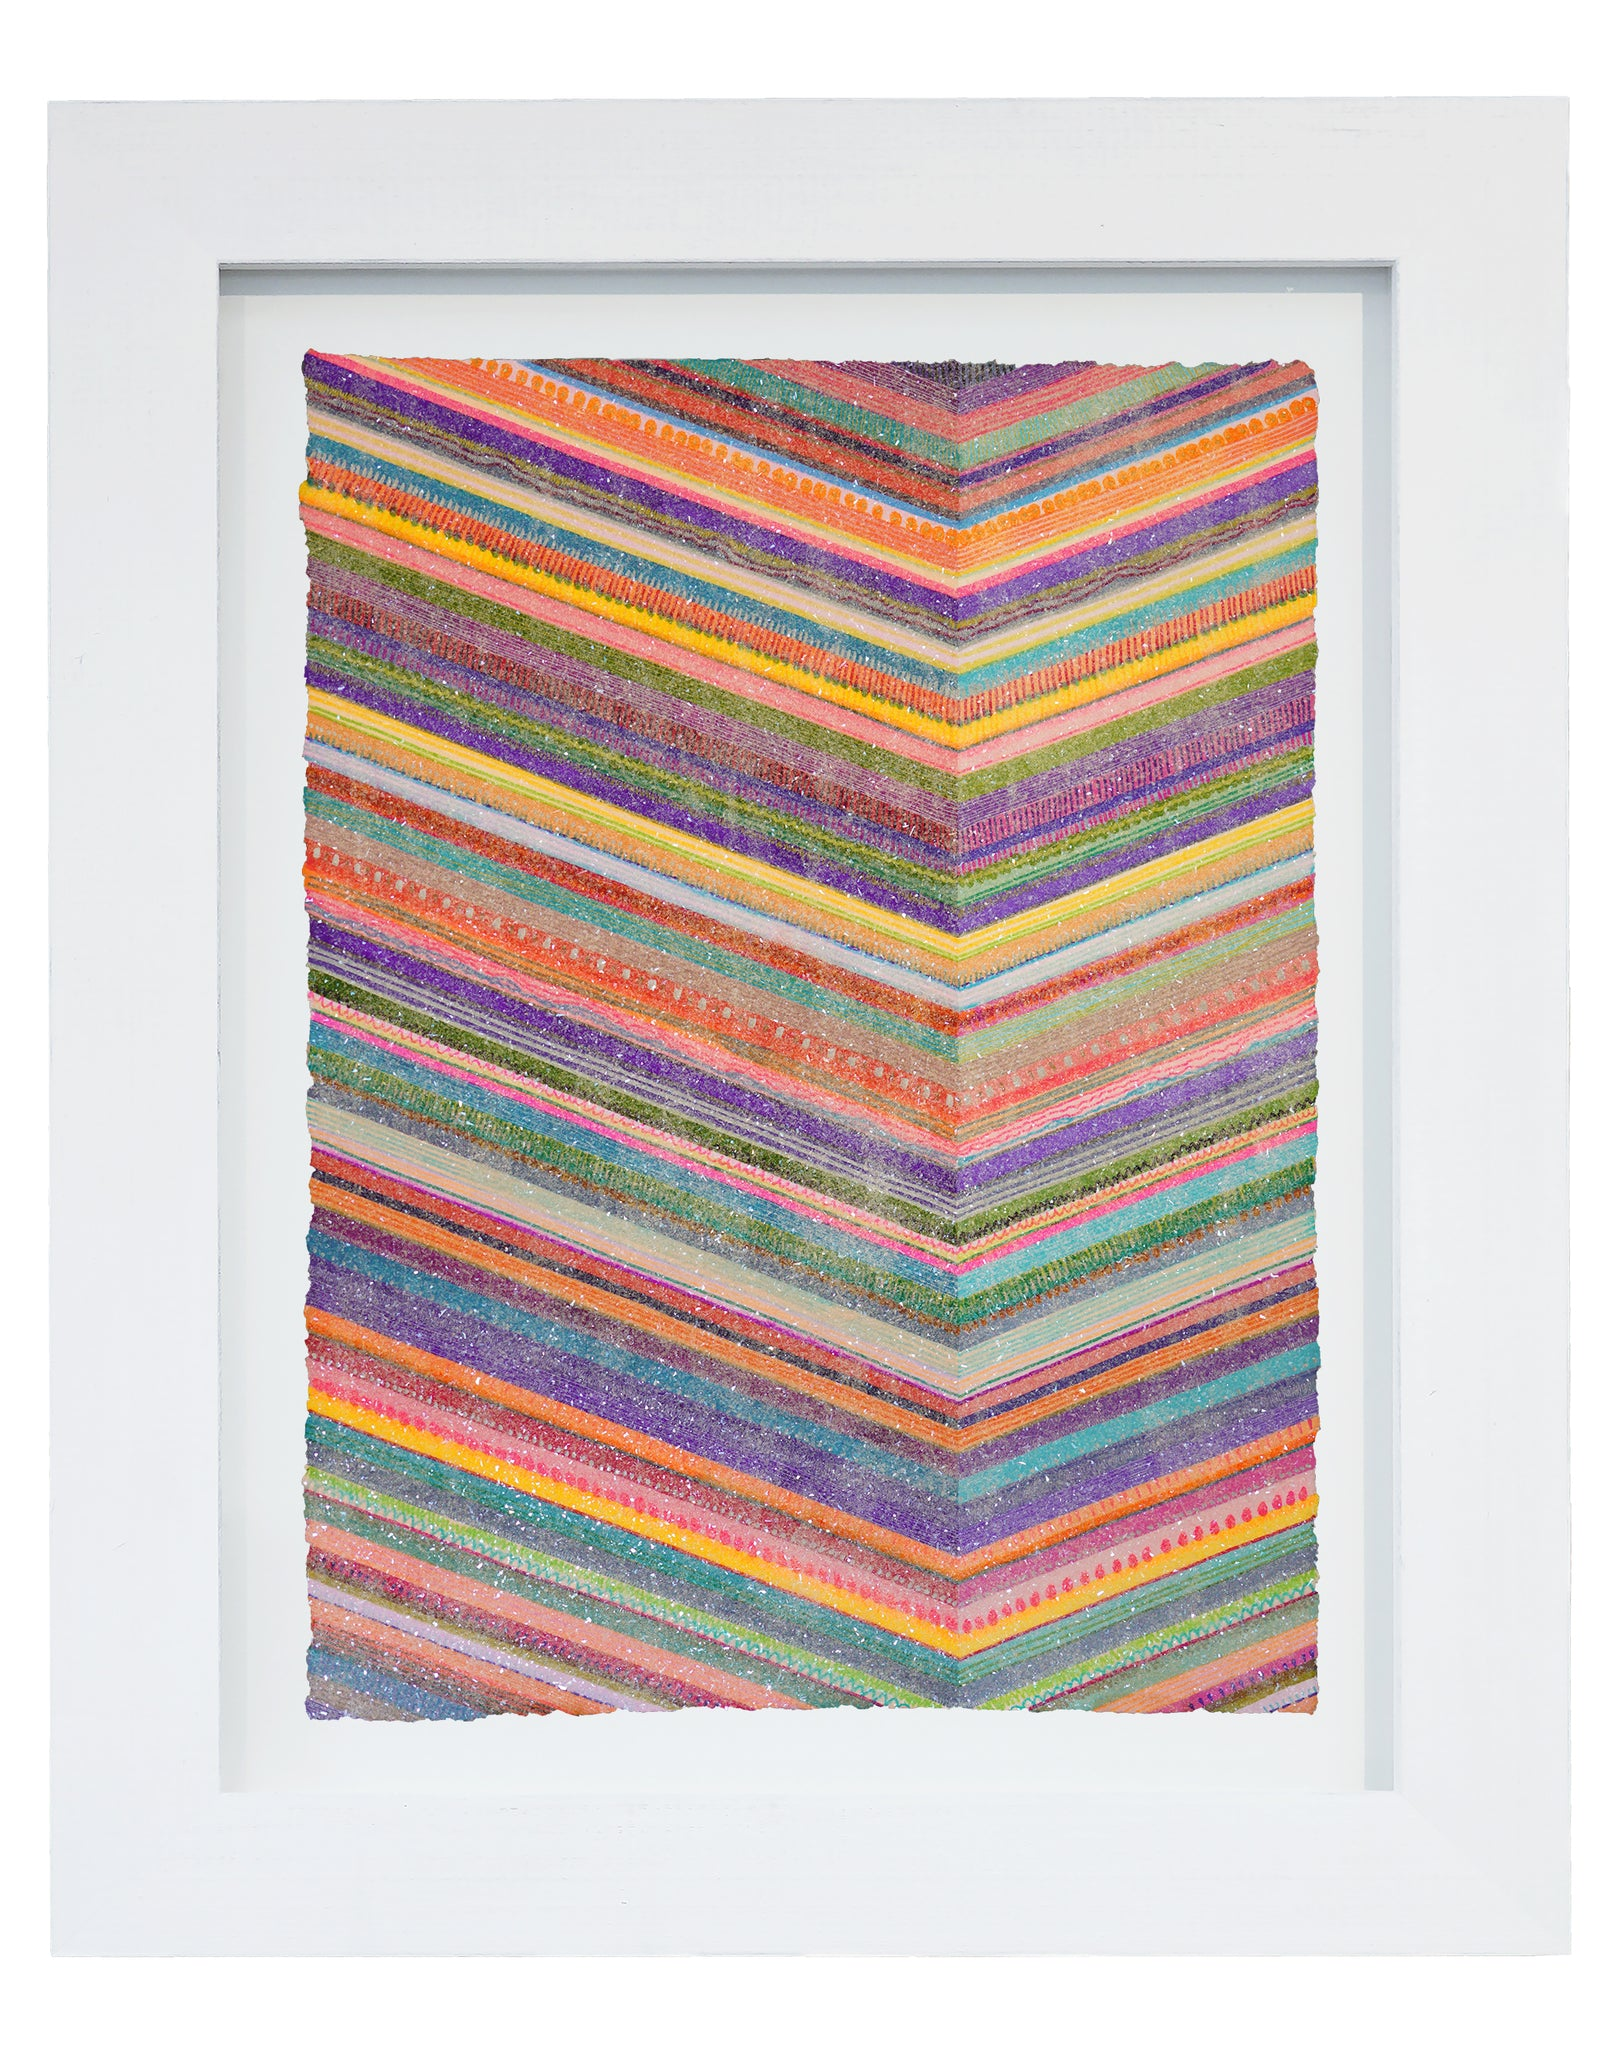 "Lineation No. 17 -36"" X 28"" Framed"